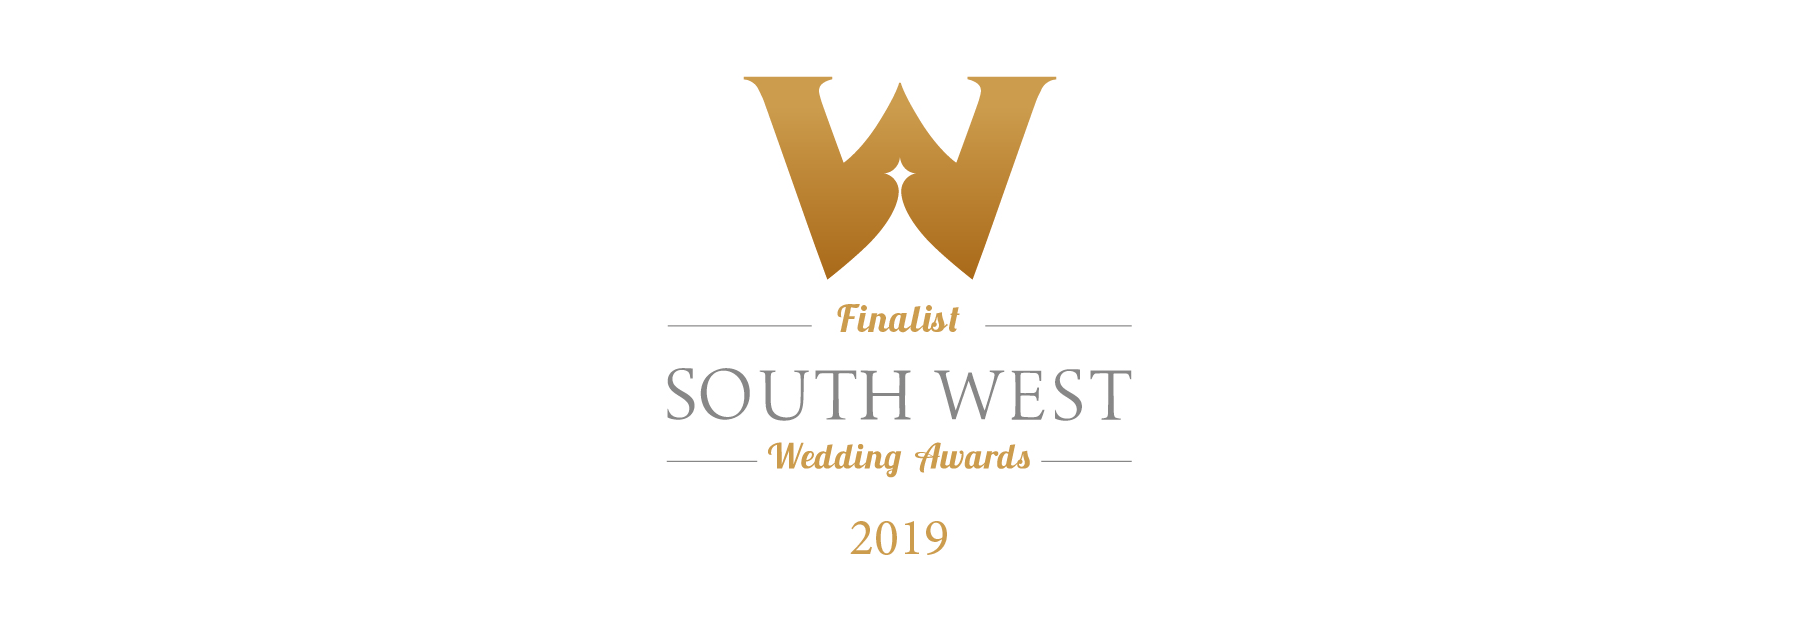 Seadog Foods South West Wedding Awards Finalists 2019